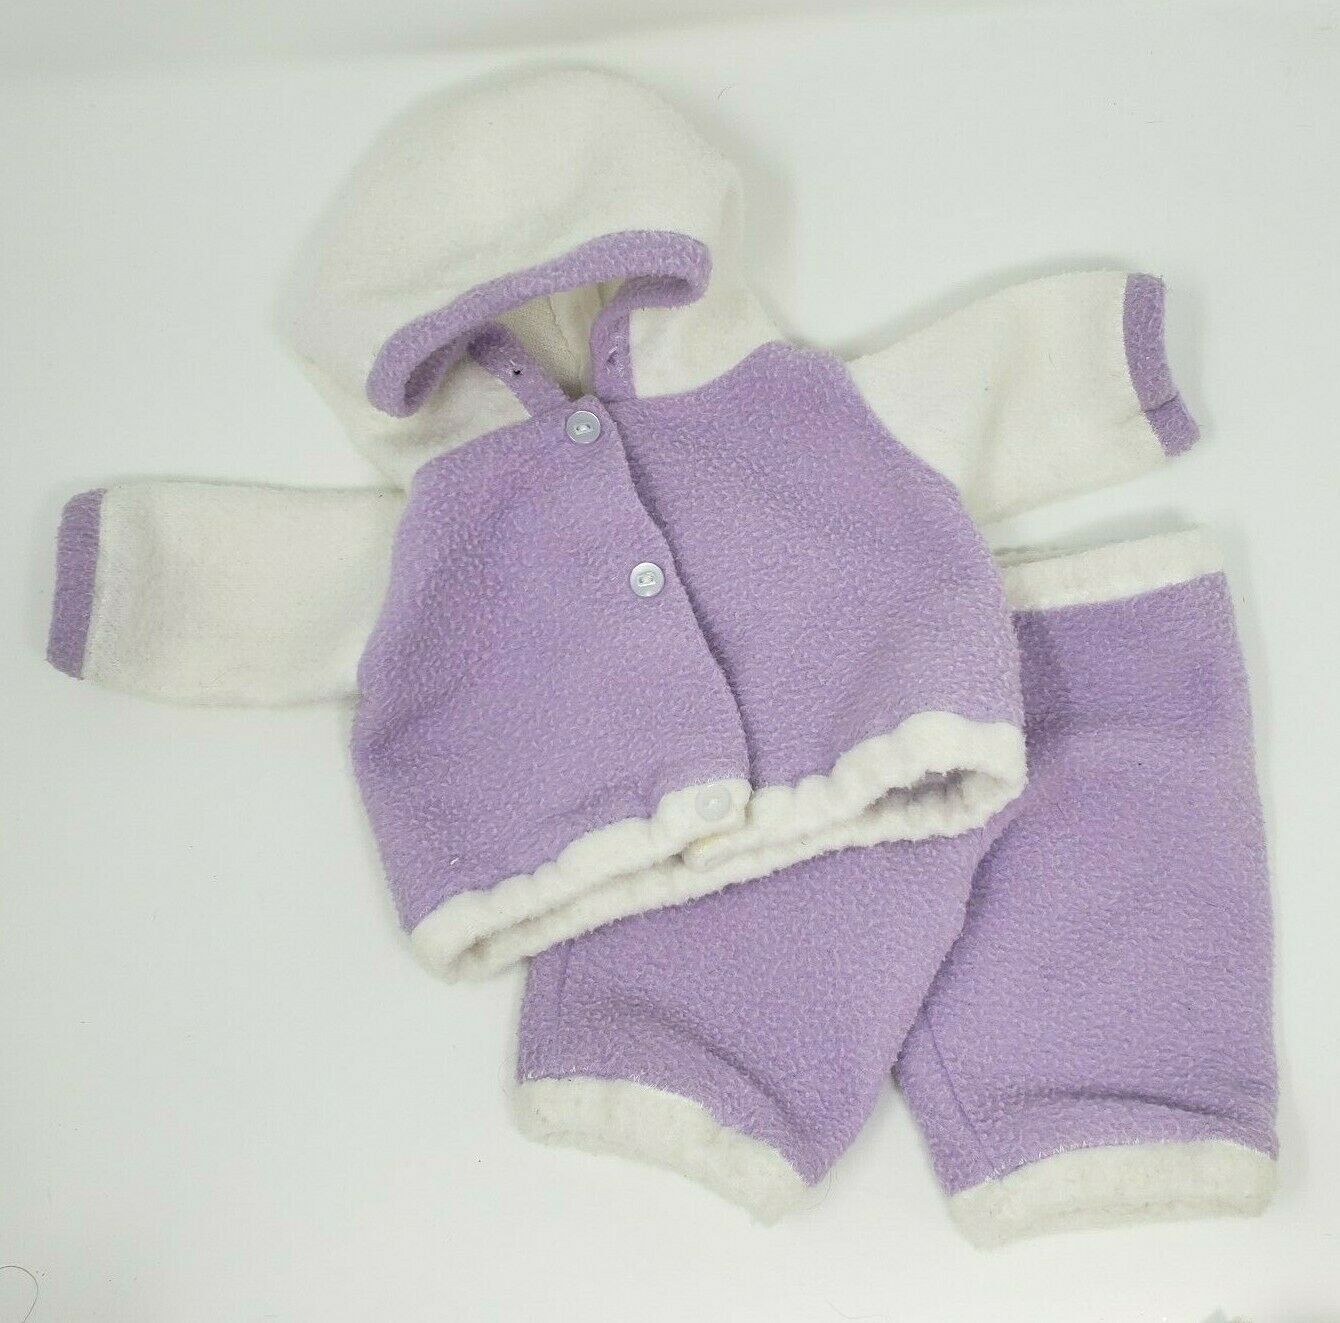 Primary image for VINTAGE CABBAGE PATCH KIDS DOLL PURPLE & WHITE FLEECE OUTFIT HOODIE TOP & PANTS